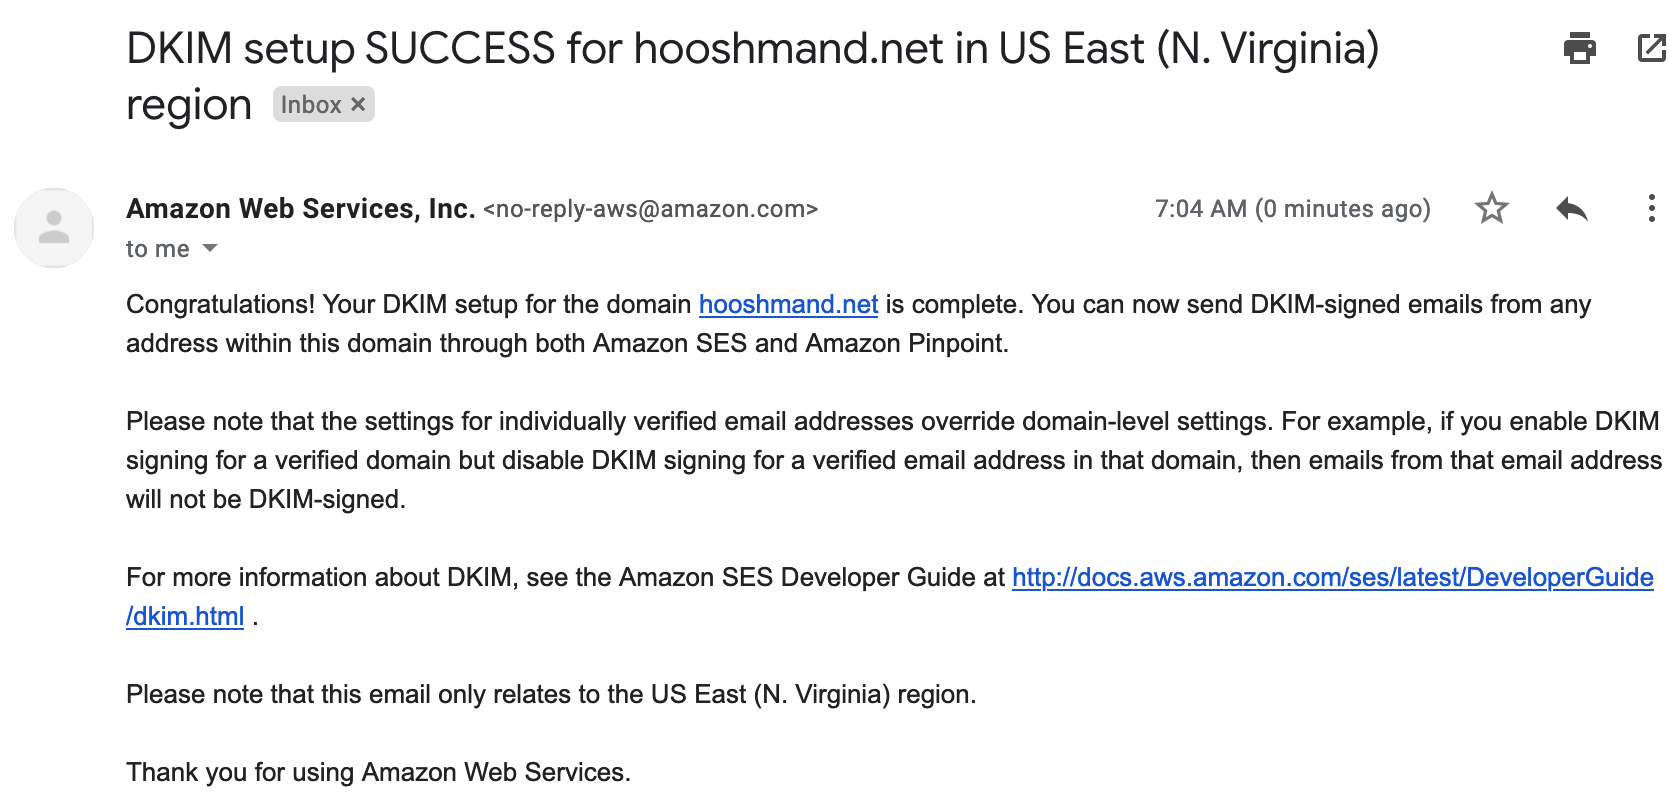 DKIM success email